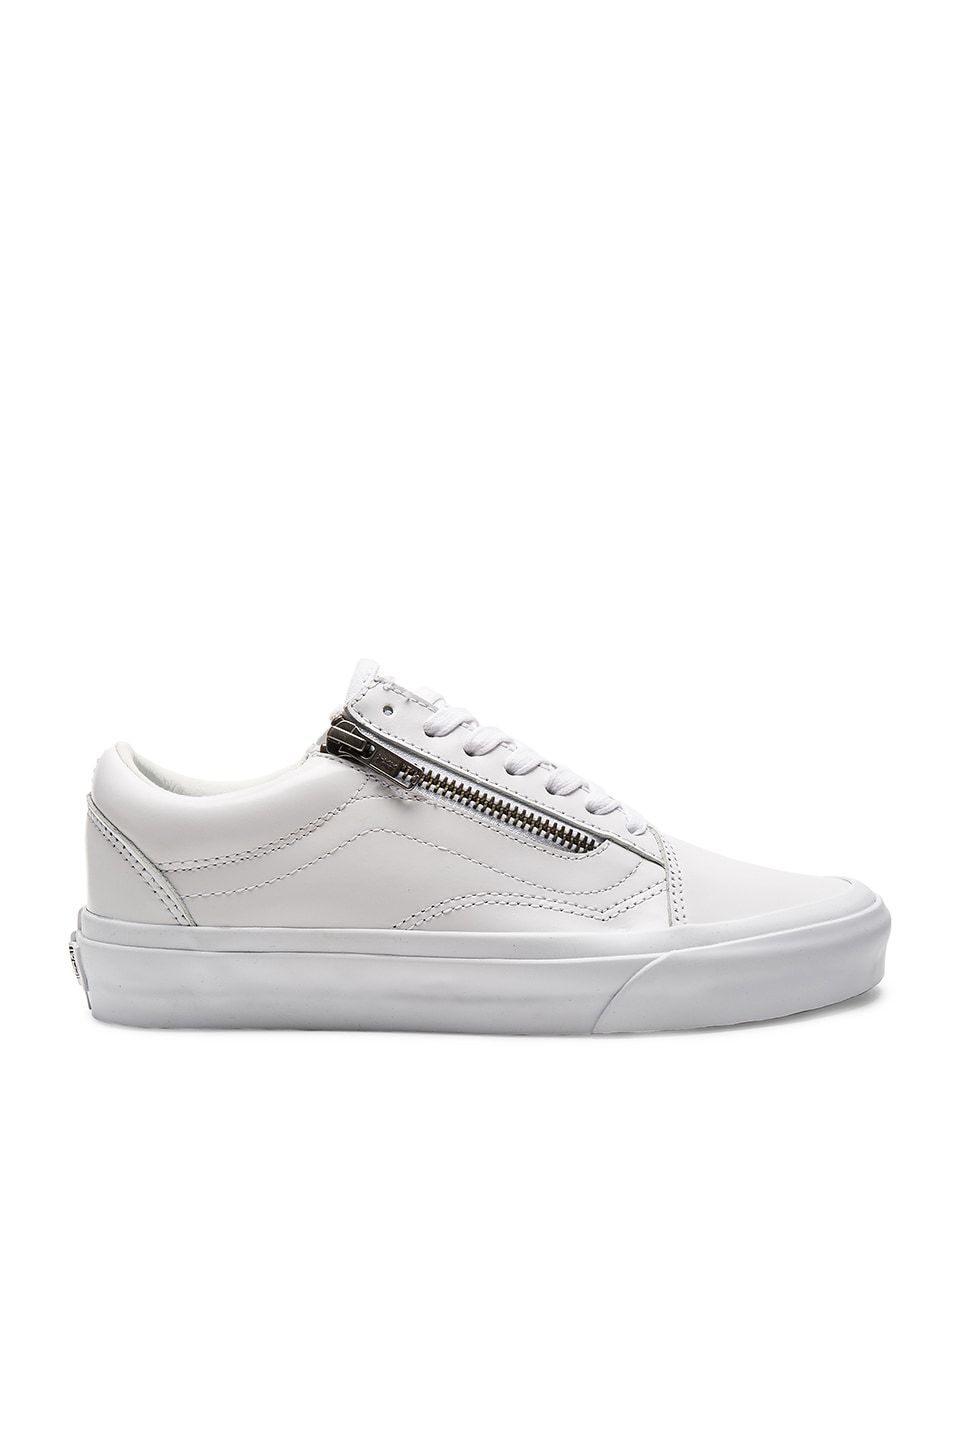 Vans Old Skool Zip DX Sneaker in True White